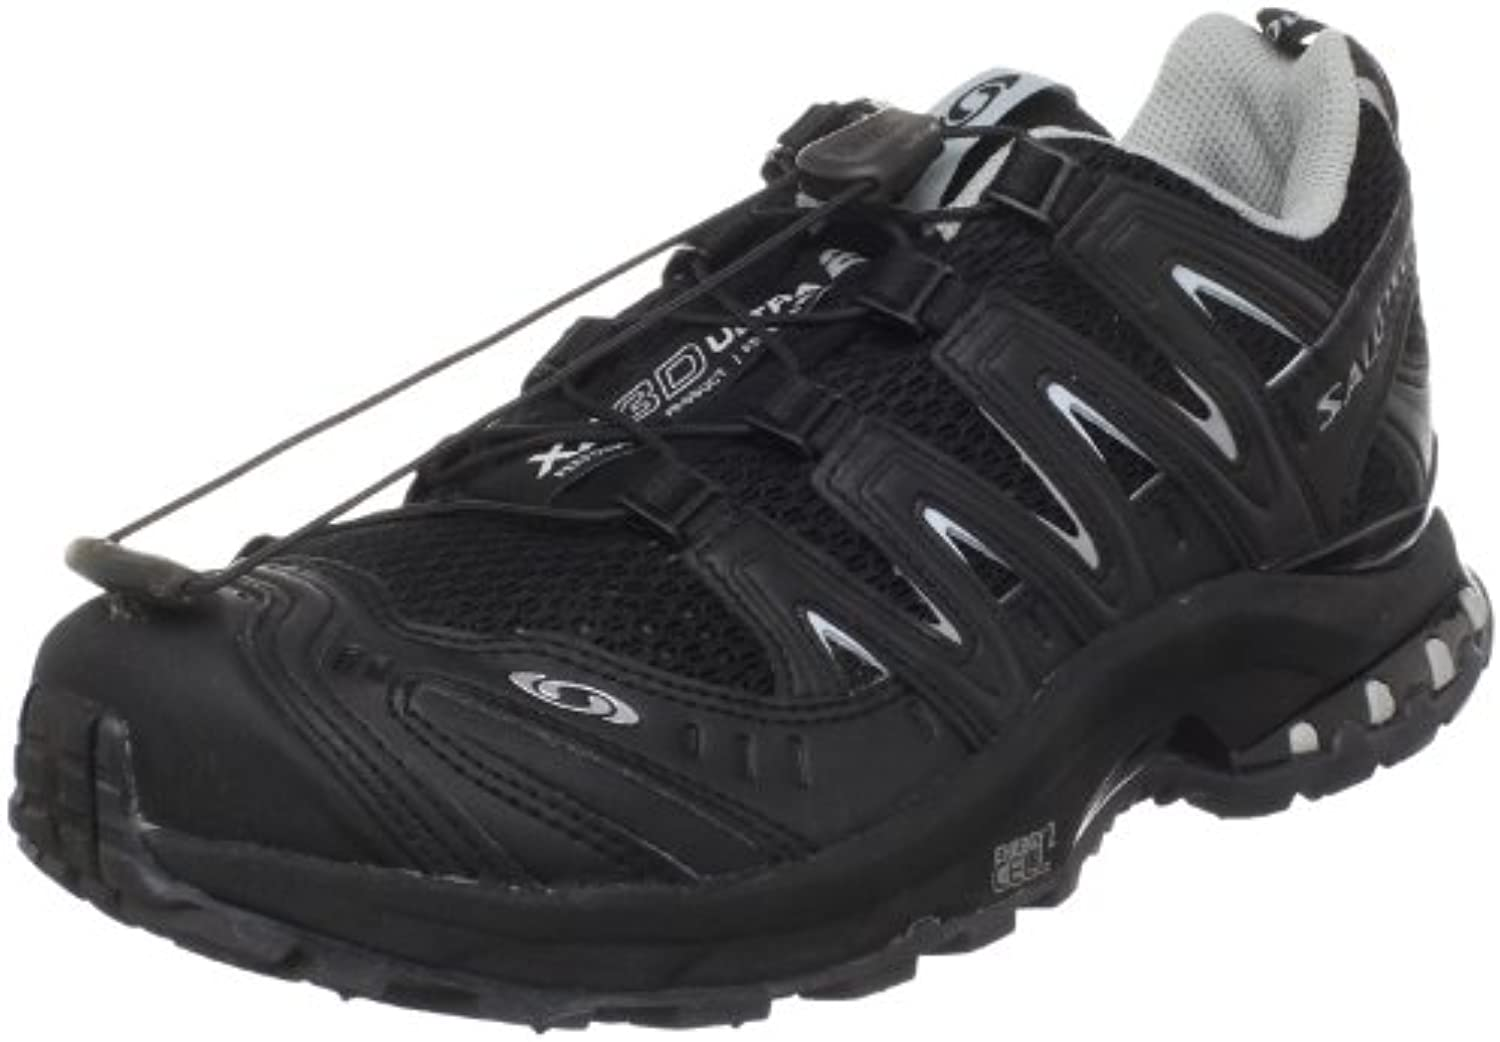 Salomon course XA Pro 3D Ultra 2 W, Chaussures de course Salomon à pied femmeB003X4K9LAParent 023037